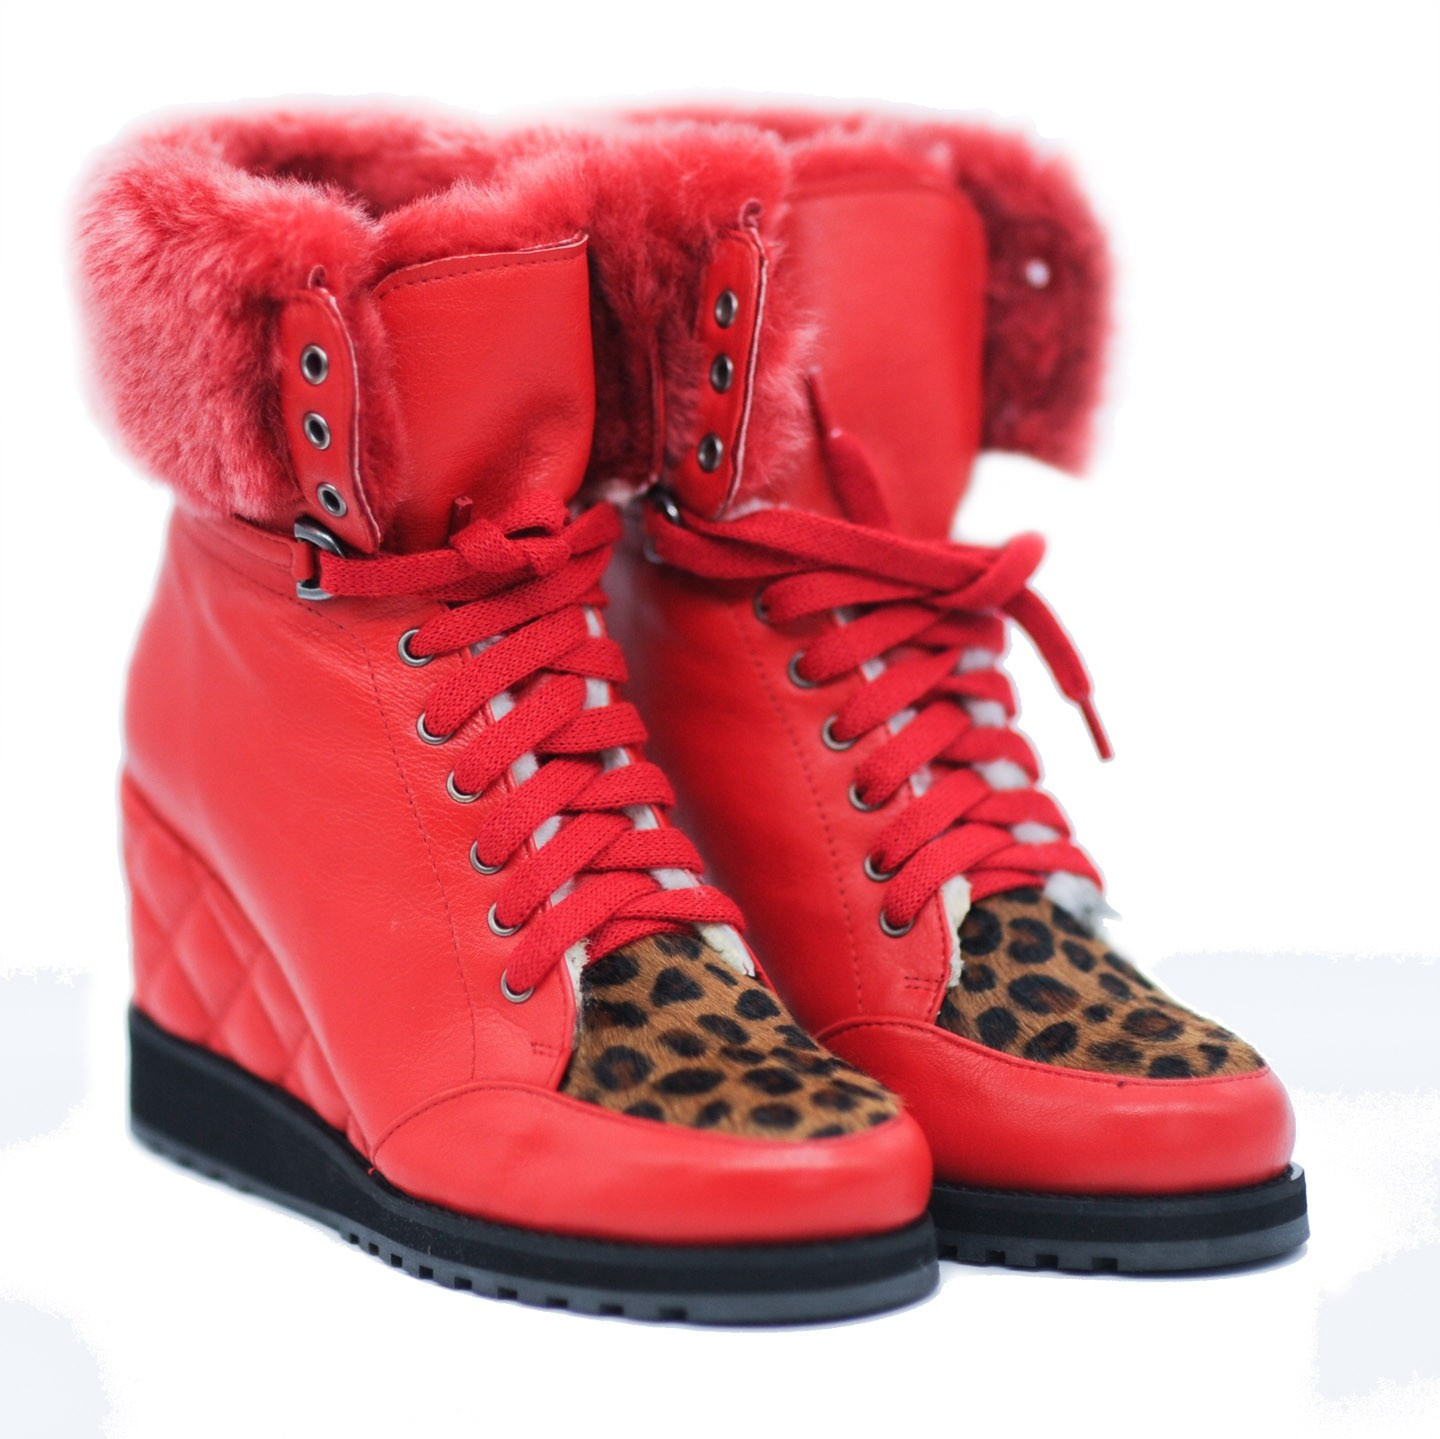 Pegia Red Leather Ankle Boots with a Leopard Skin Pattern Toe Cap Fur Trimmed Inner Wedge and Woolmark Inner